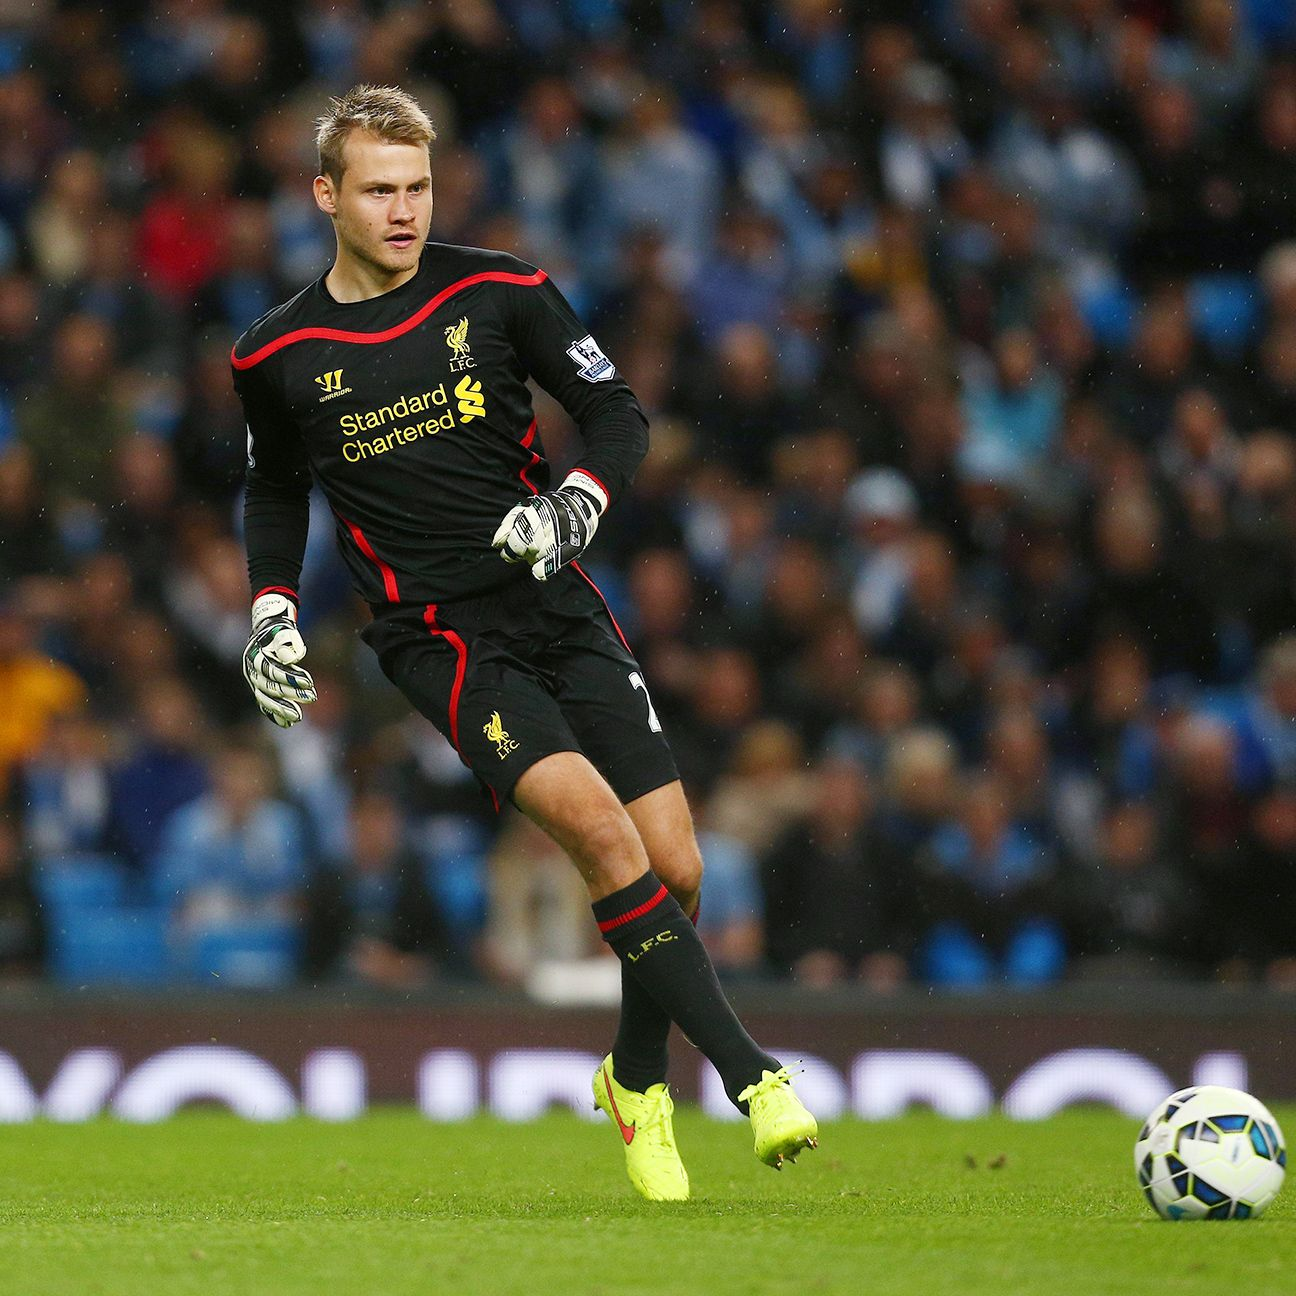 Simon Mignolet's troubles in goal have made for some nervy moments for Liverpool fans.